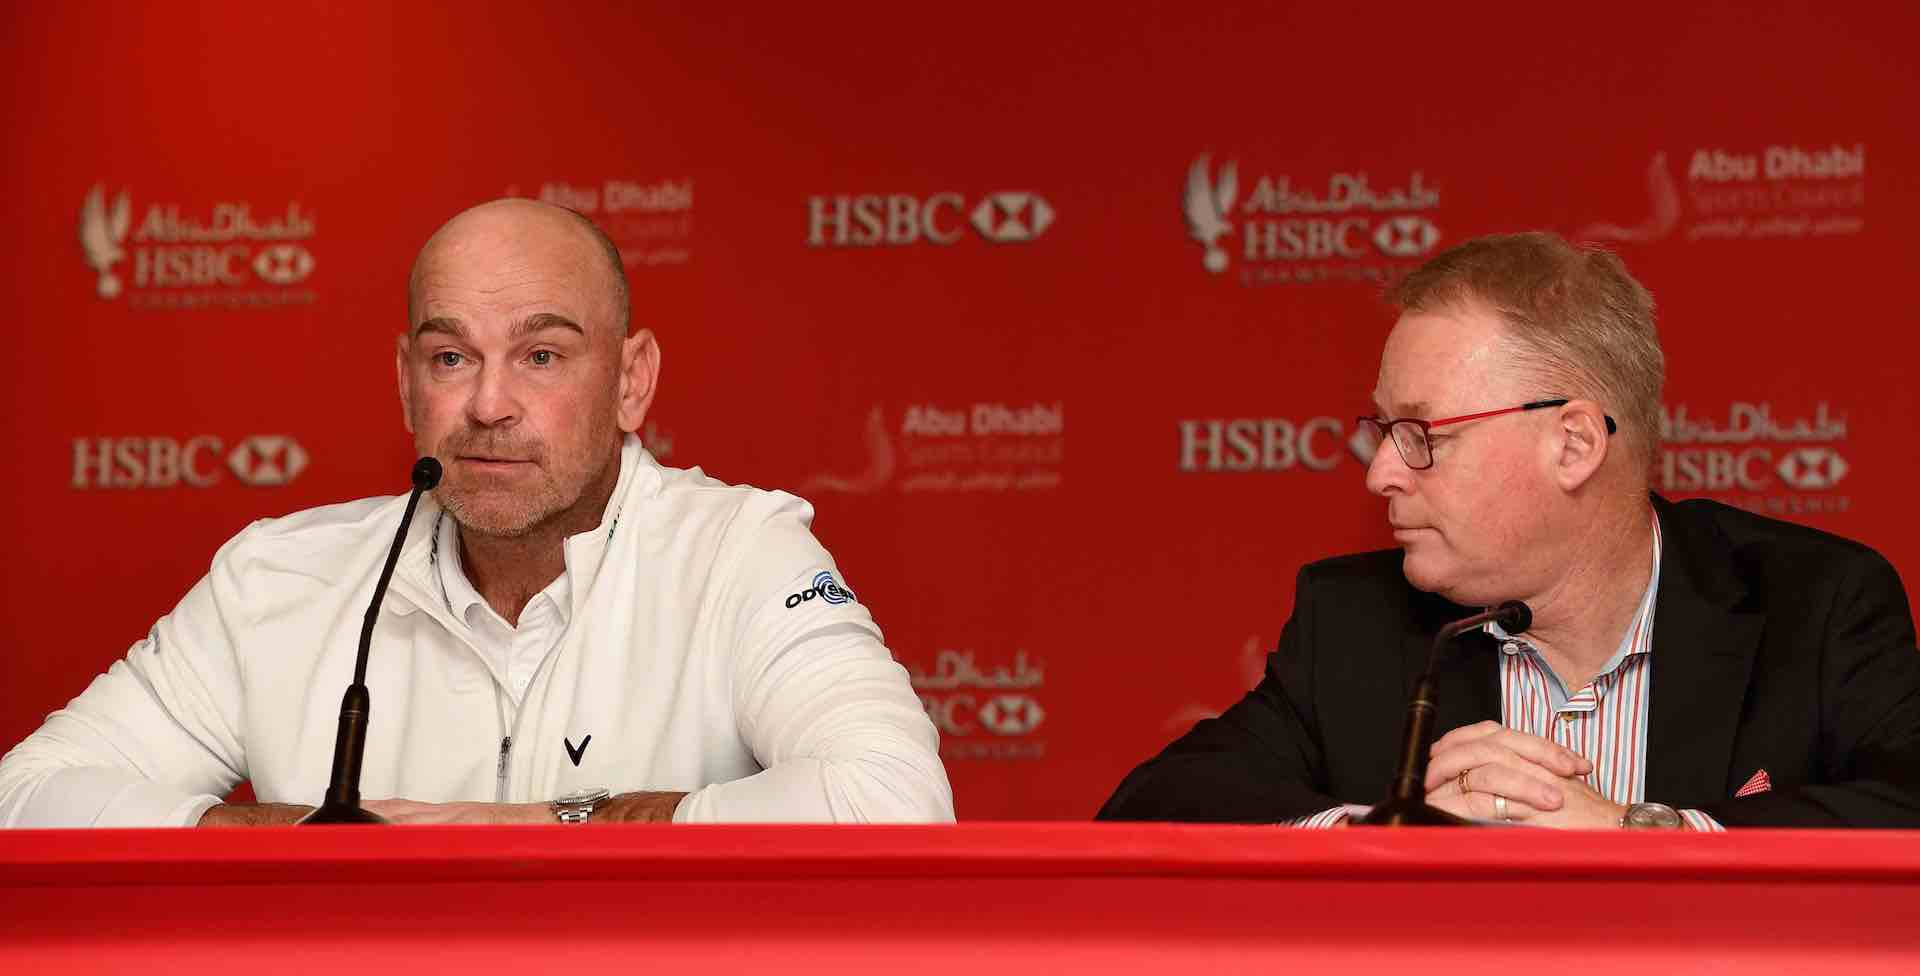 All change for Ryder Cup rules